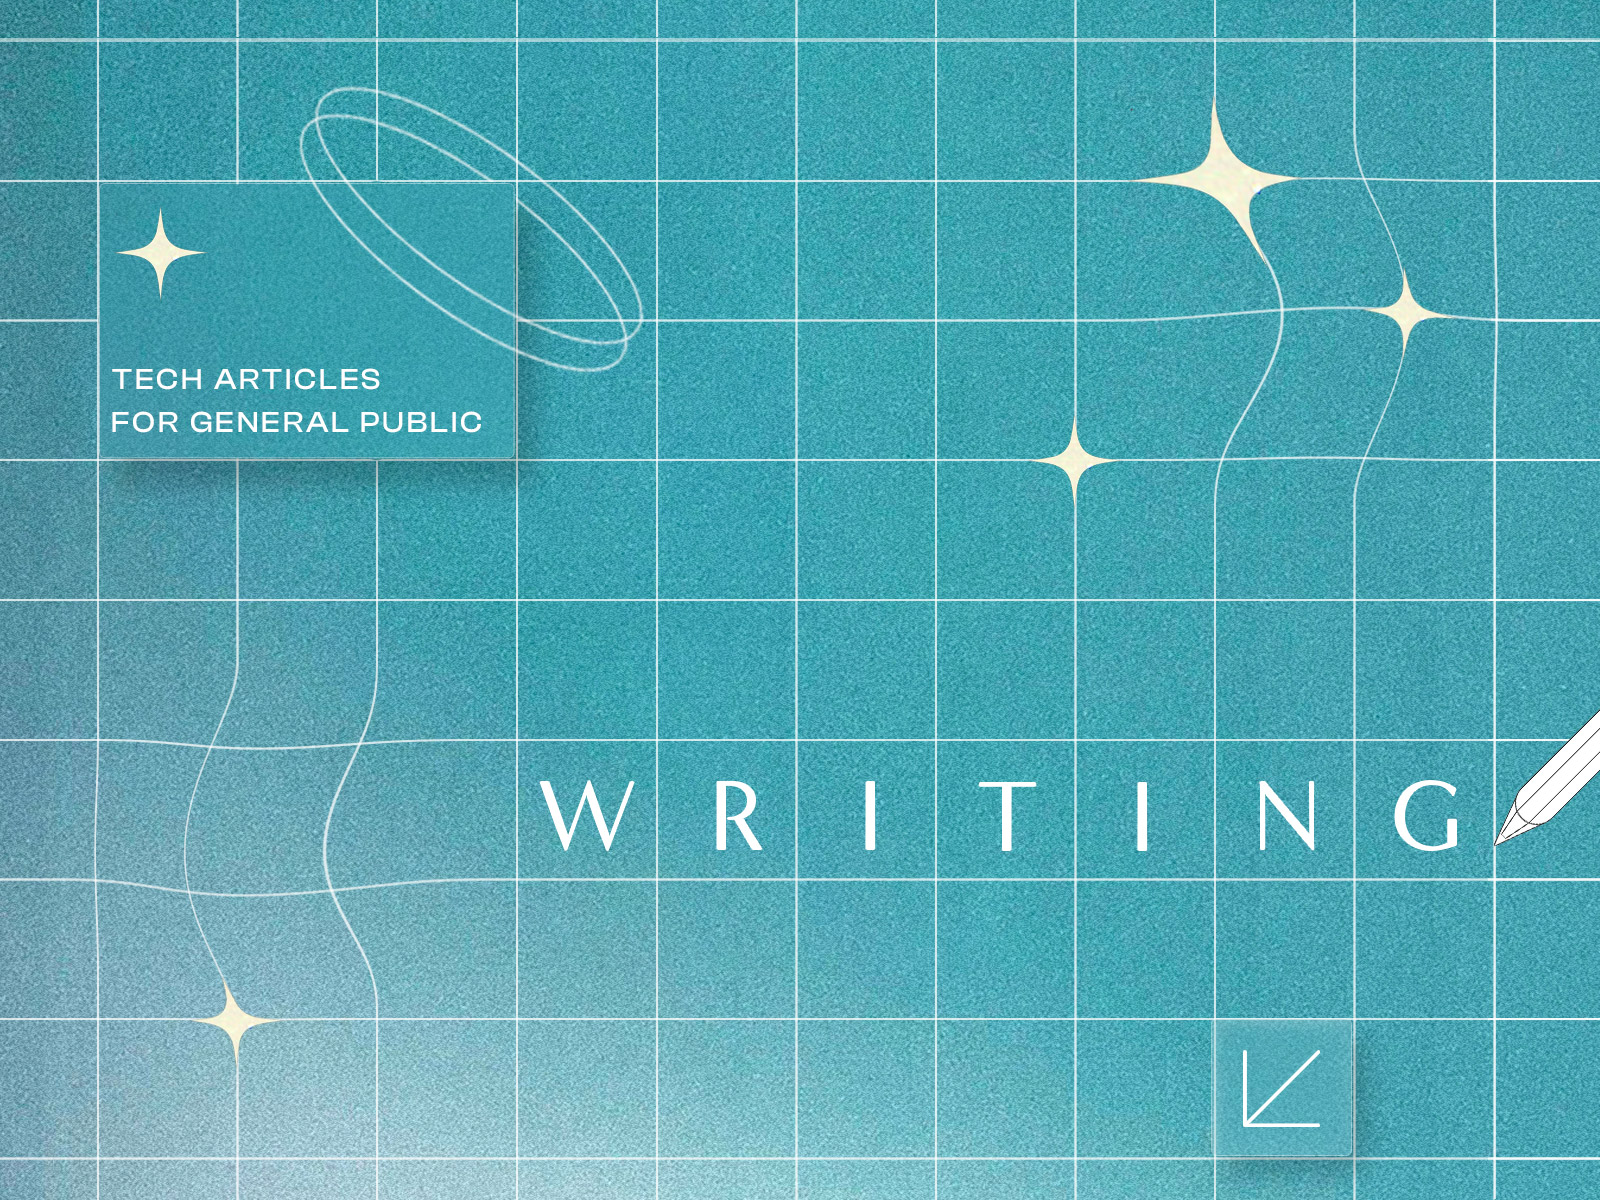 Writing sample covers